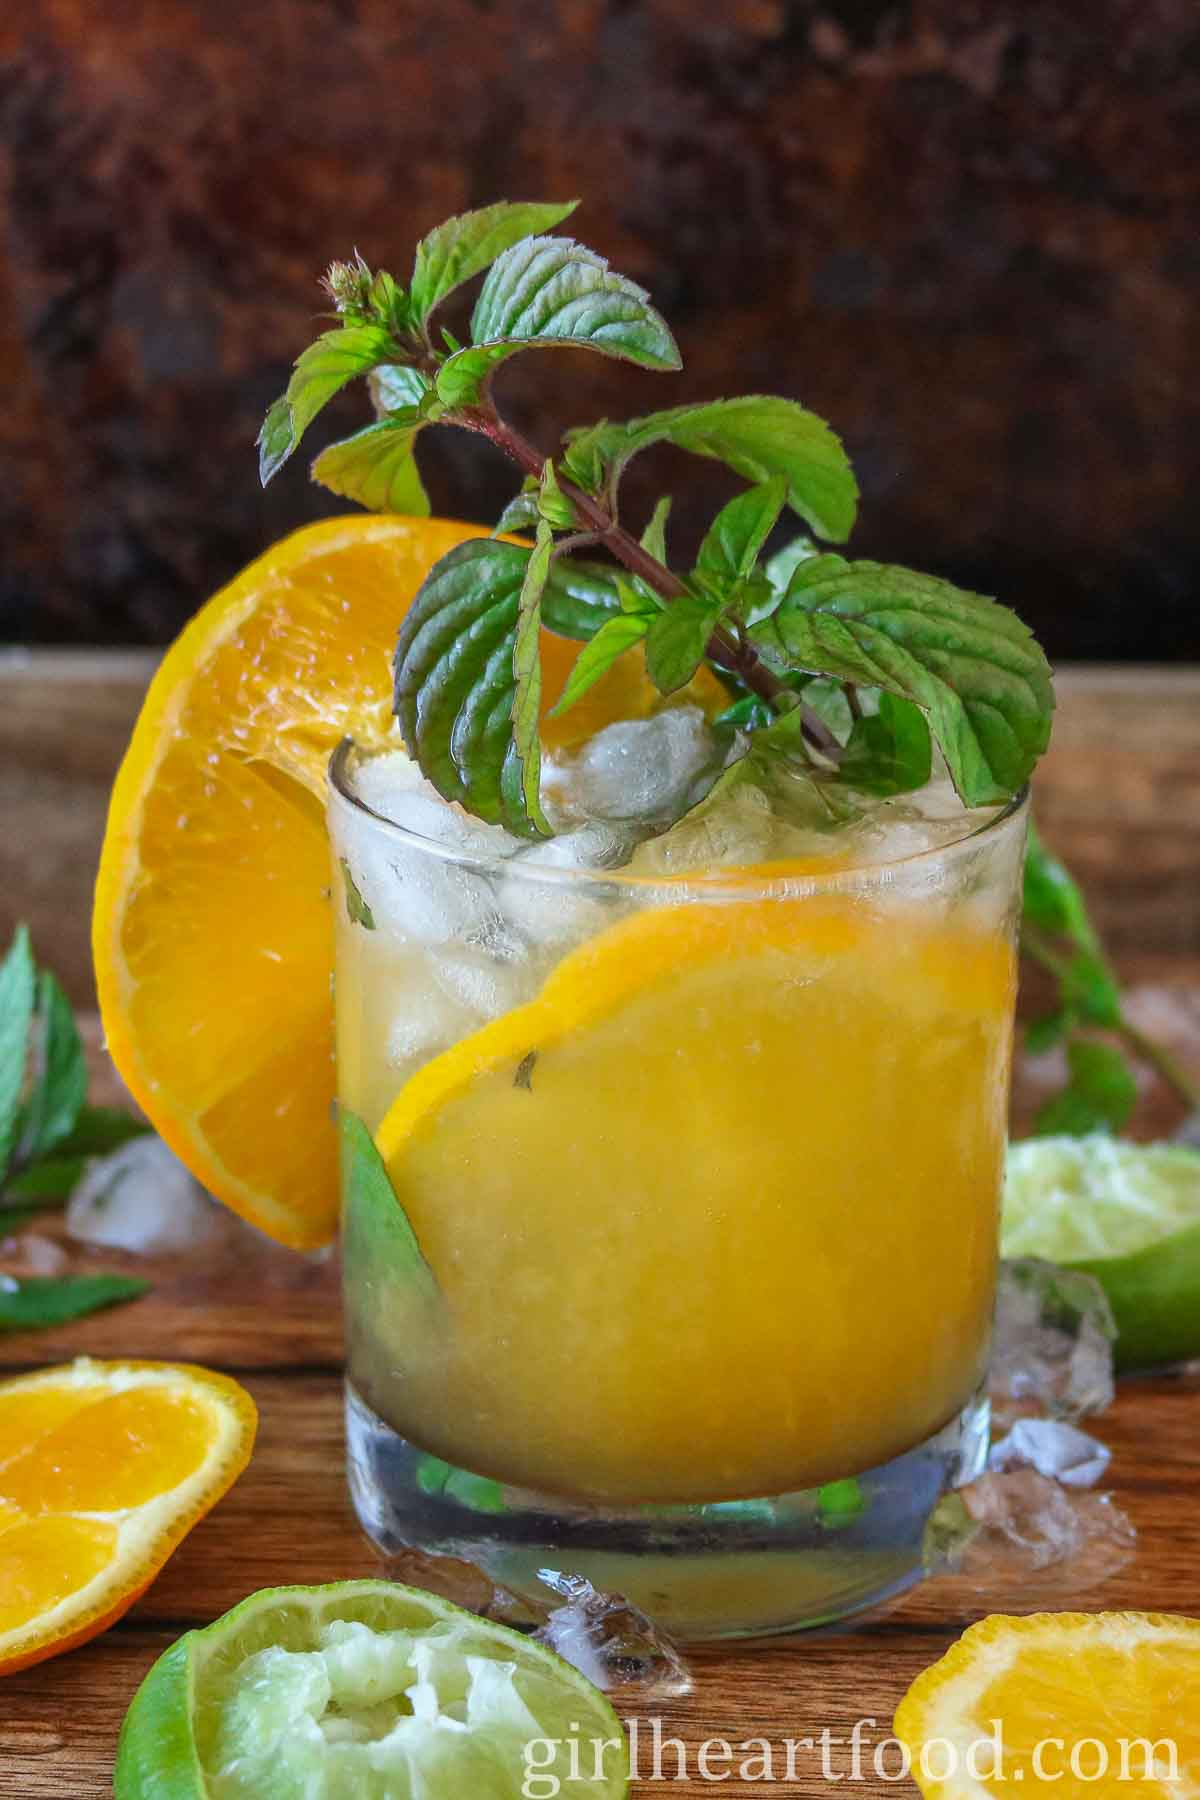 Glass of orange cocktail garnished with fresh mint and an orange slice.